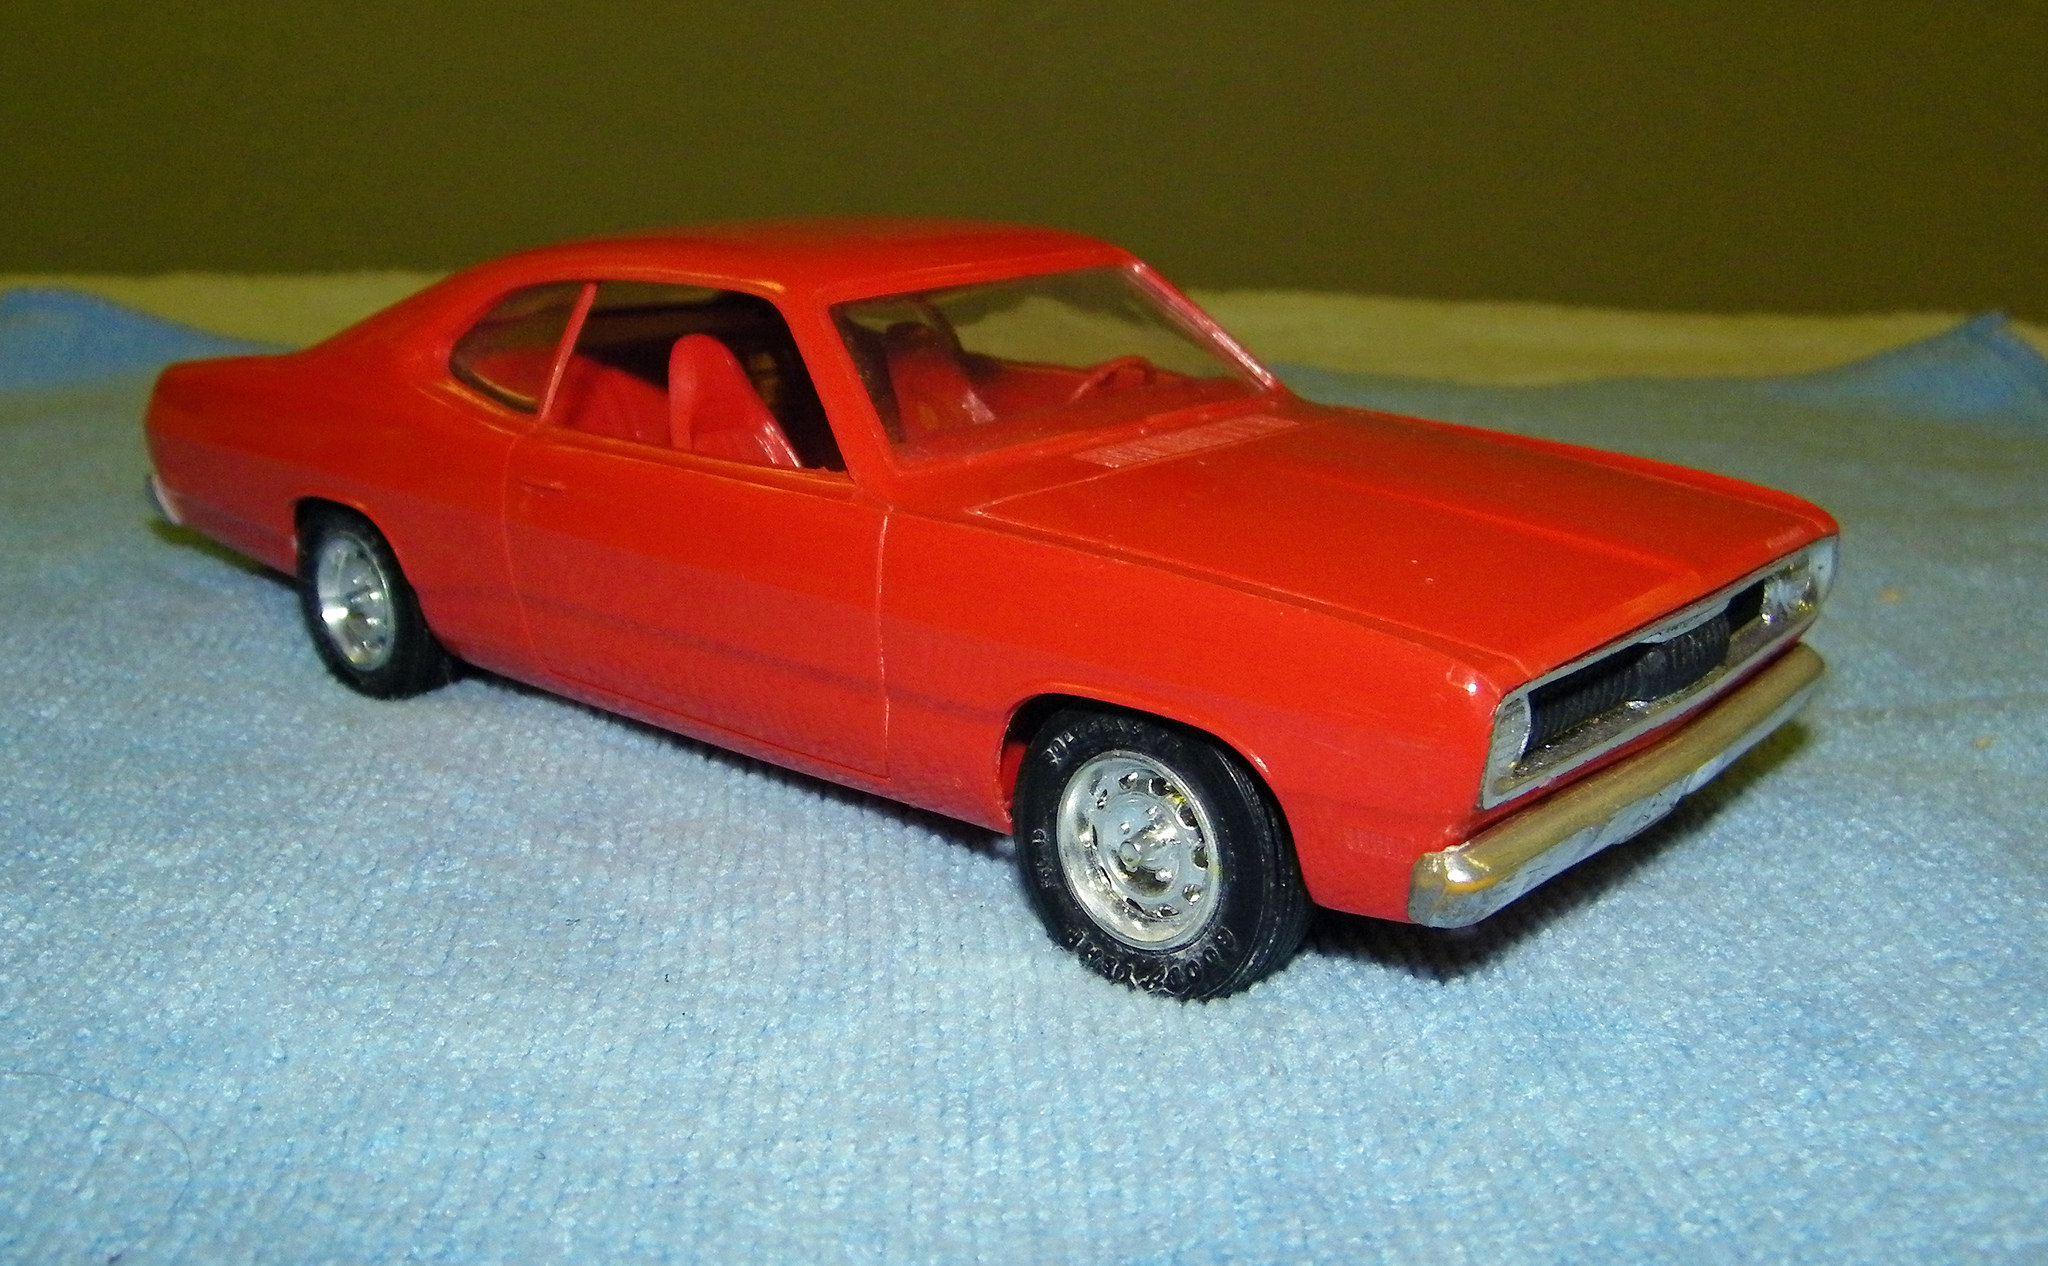 1971 plymouth duster 340 promo model car model cars hobbydb. Black Bedroom Furniture Sets. Home Design Ideas